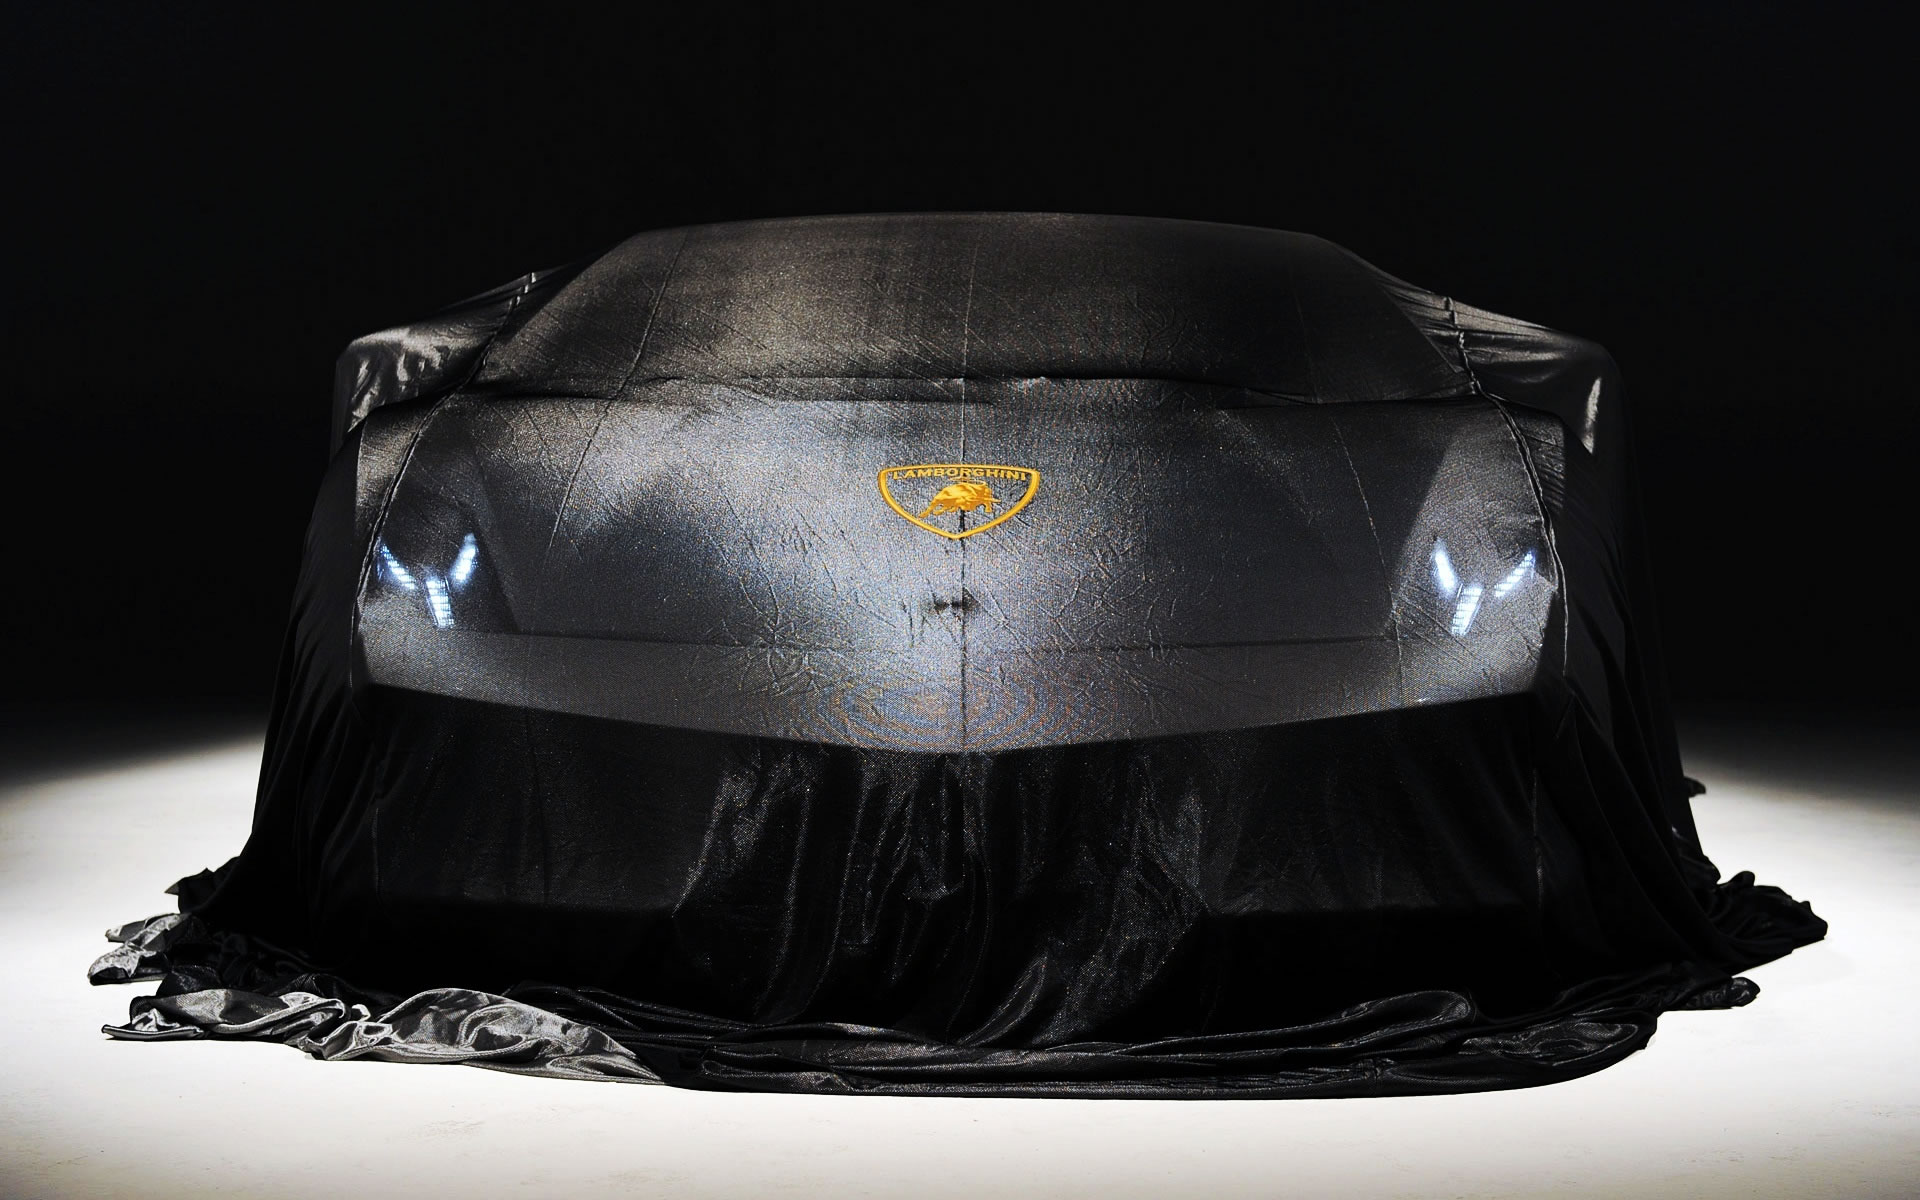 Wallpapers de Coches. Lamborghini Tapado